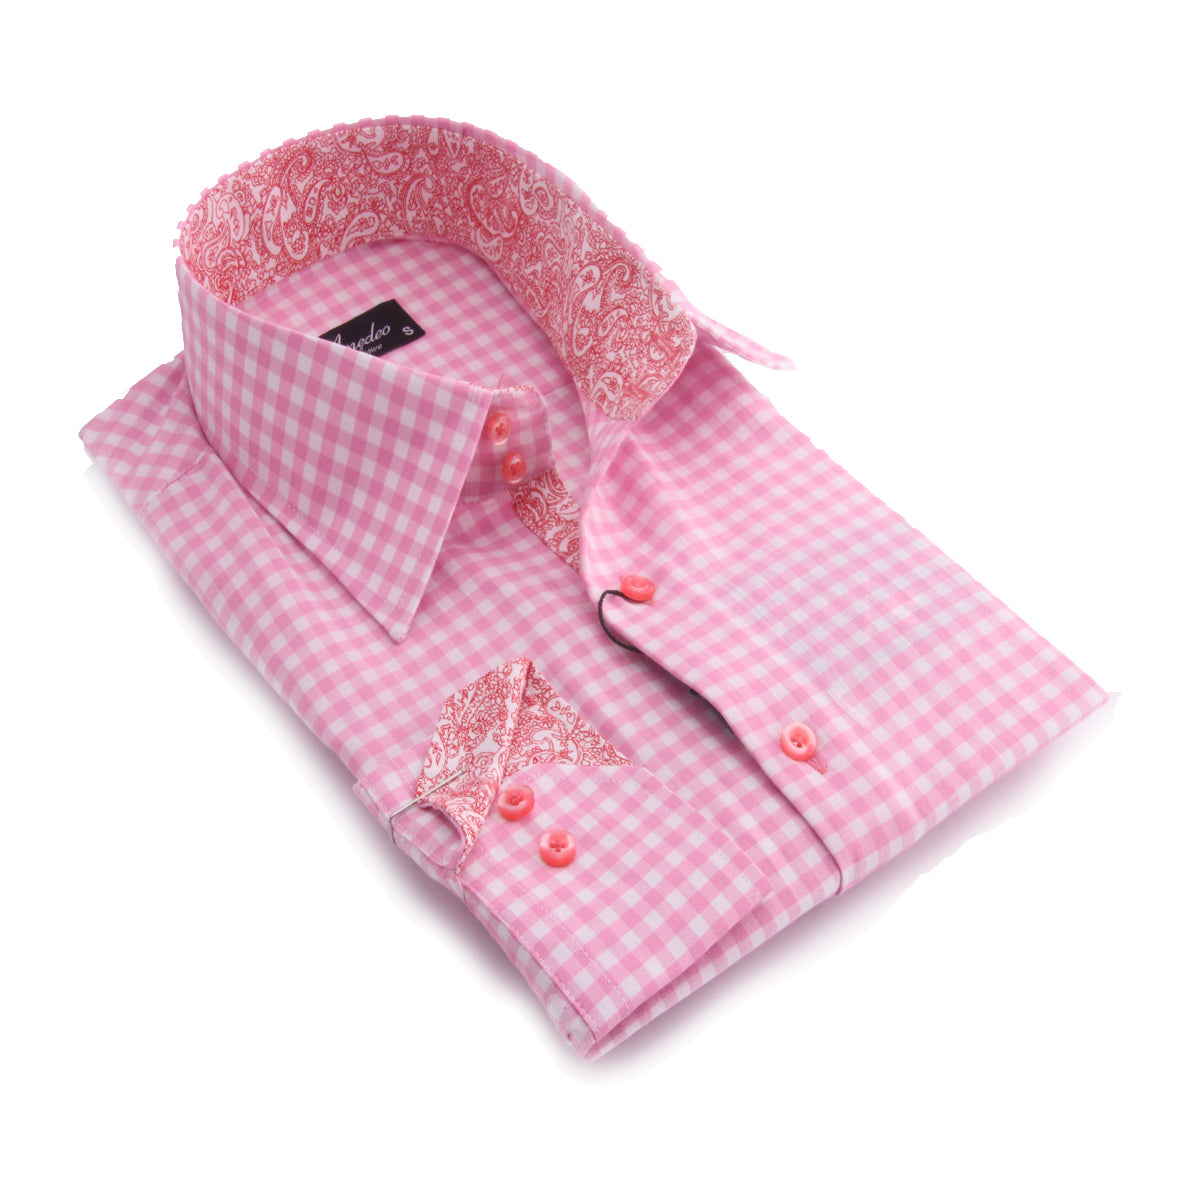 Mens Pink and White Check with Paisley Reversible Cuff Button Down Shirt Made with 100% Cotton - Amedeo Exclusive